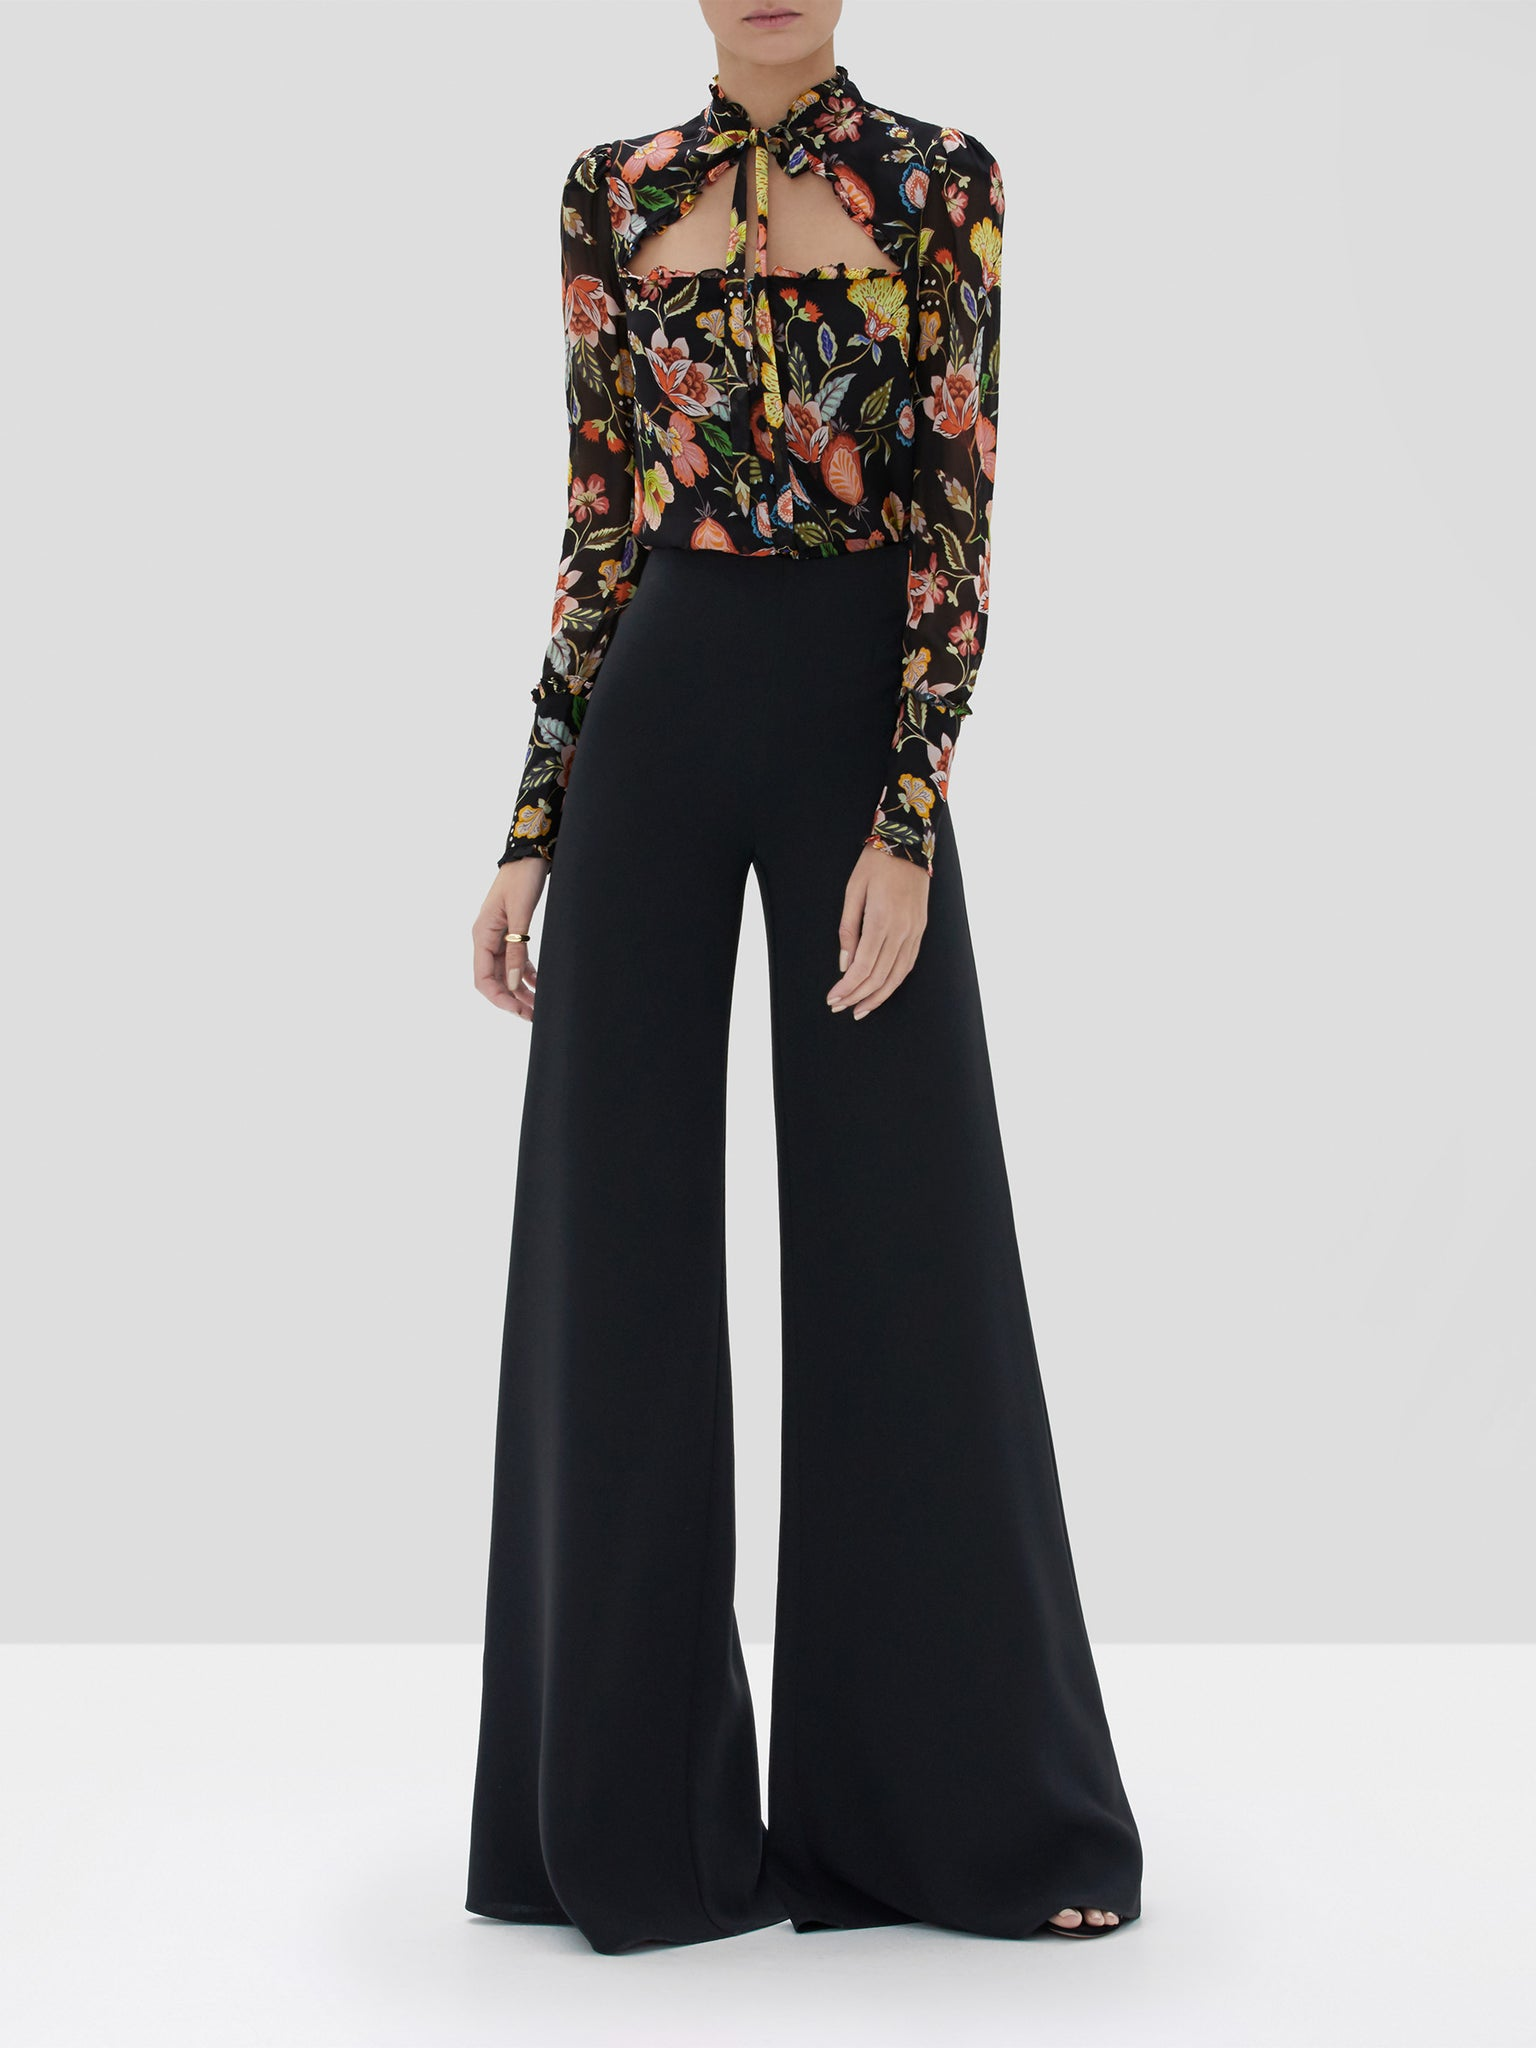 Alexis Elodie Top Black Nouveau and Irvine Pant Black from the Fall Winter 2019 Collection